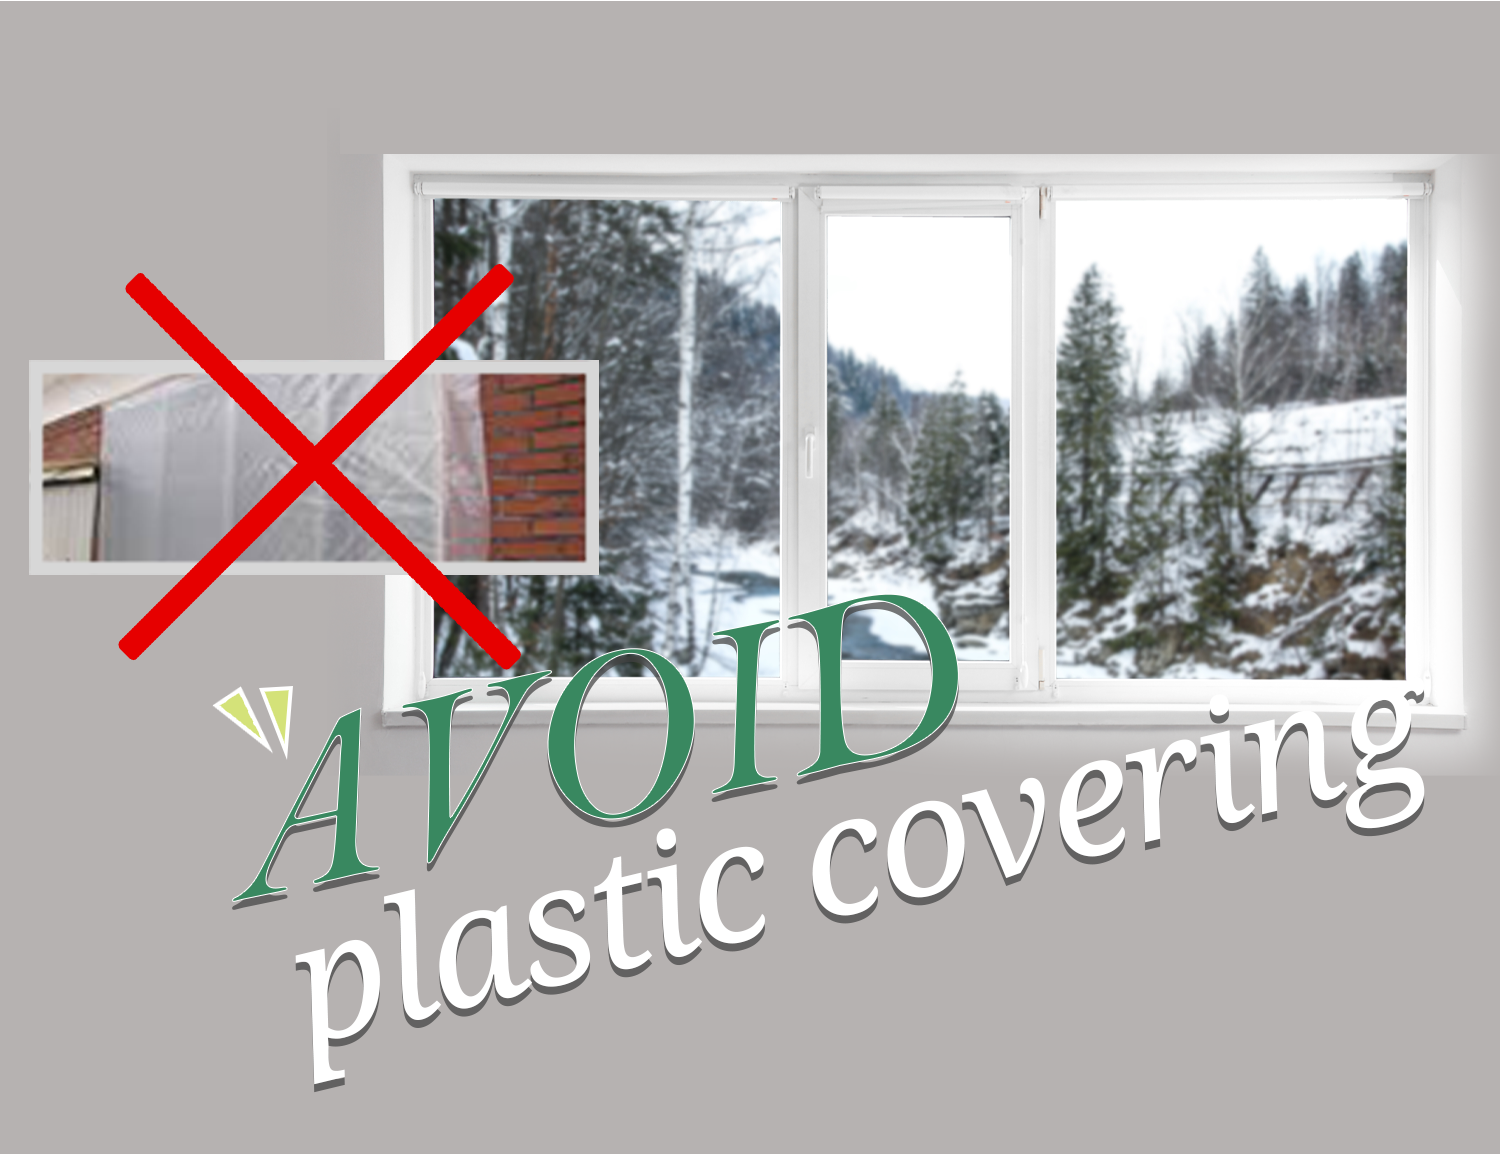 Avoid Plastic Covering